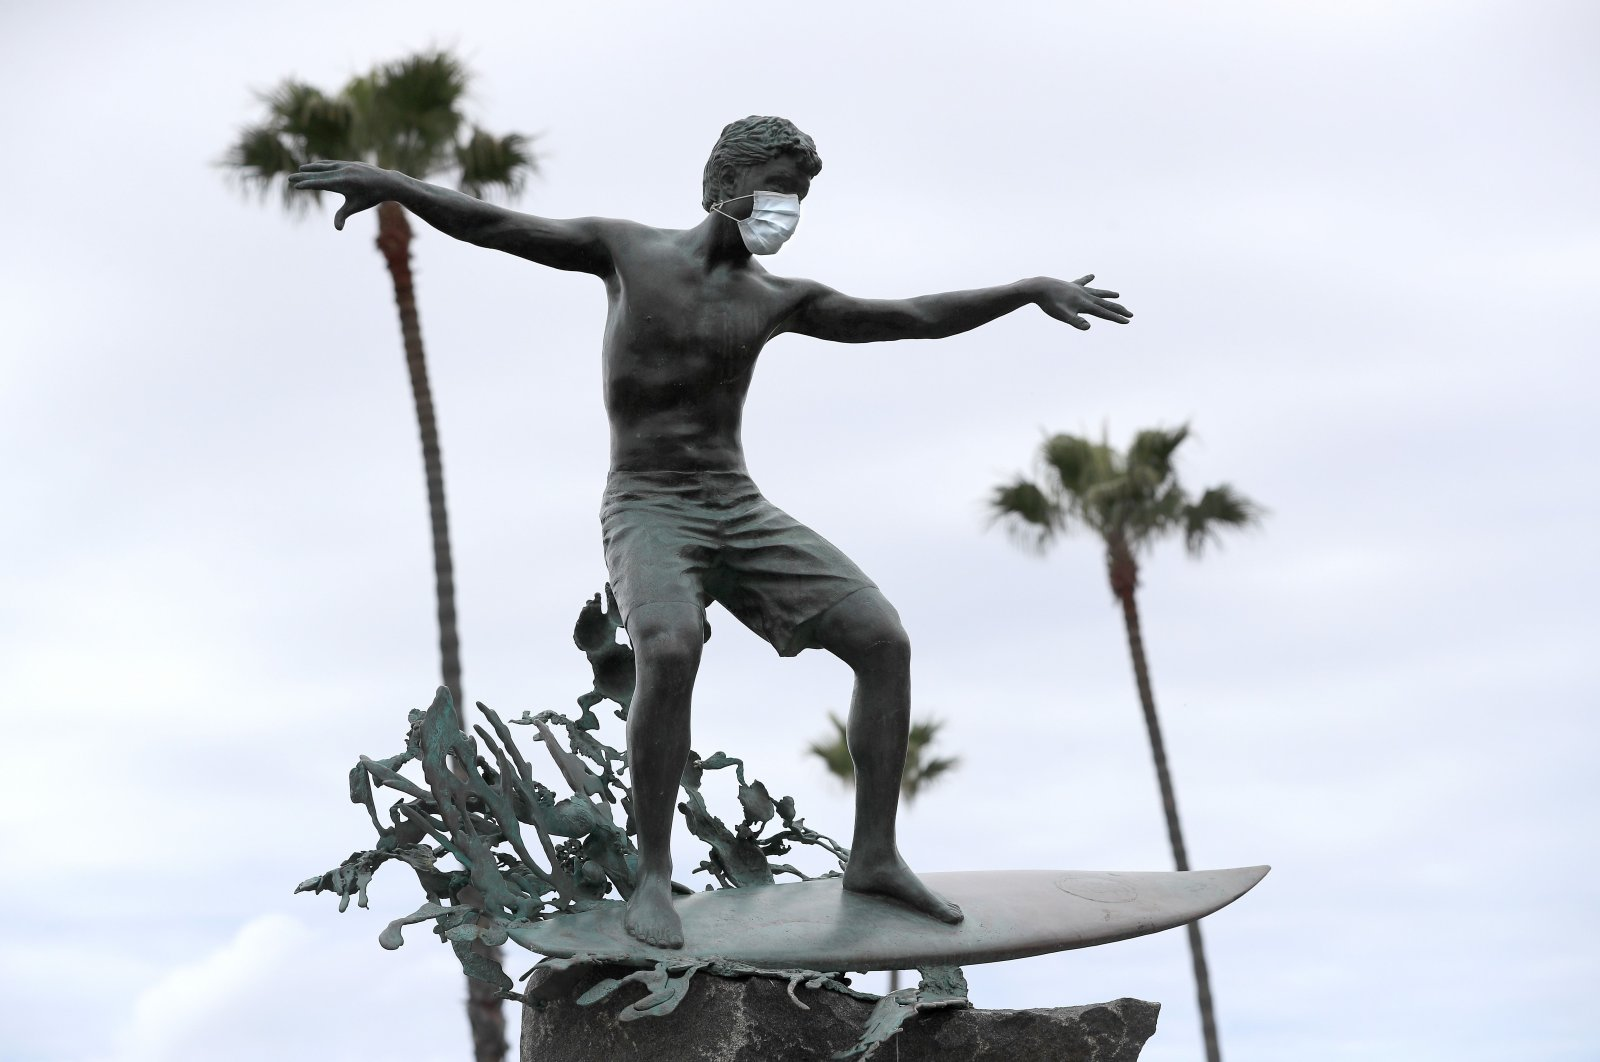 """The """"Magic Carpet Ride"""" statue along Highway 101 had a surgical mask put on it, Cardiff-by-the-Sea, California, March 15, 2020. (AFP Photo)"""